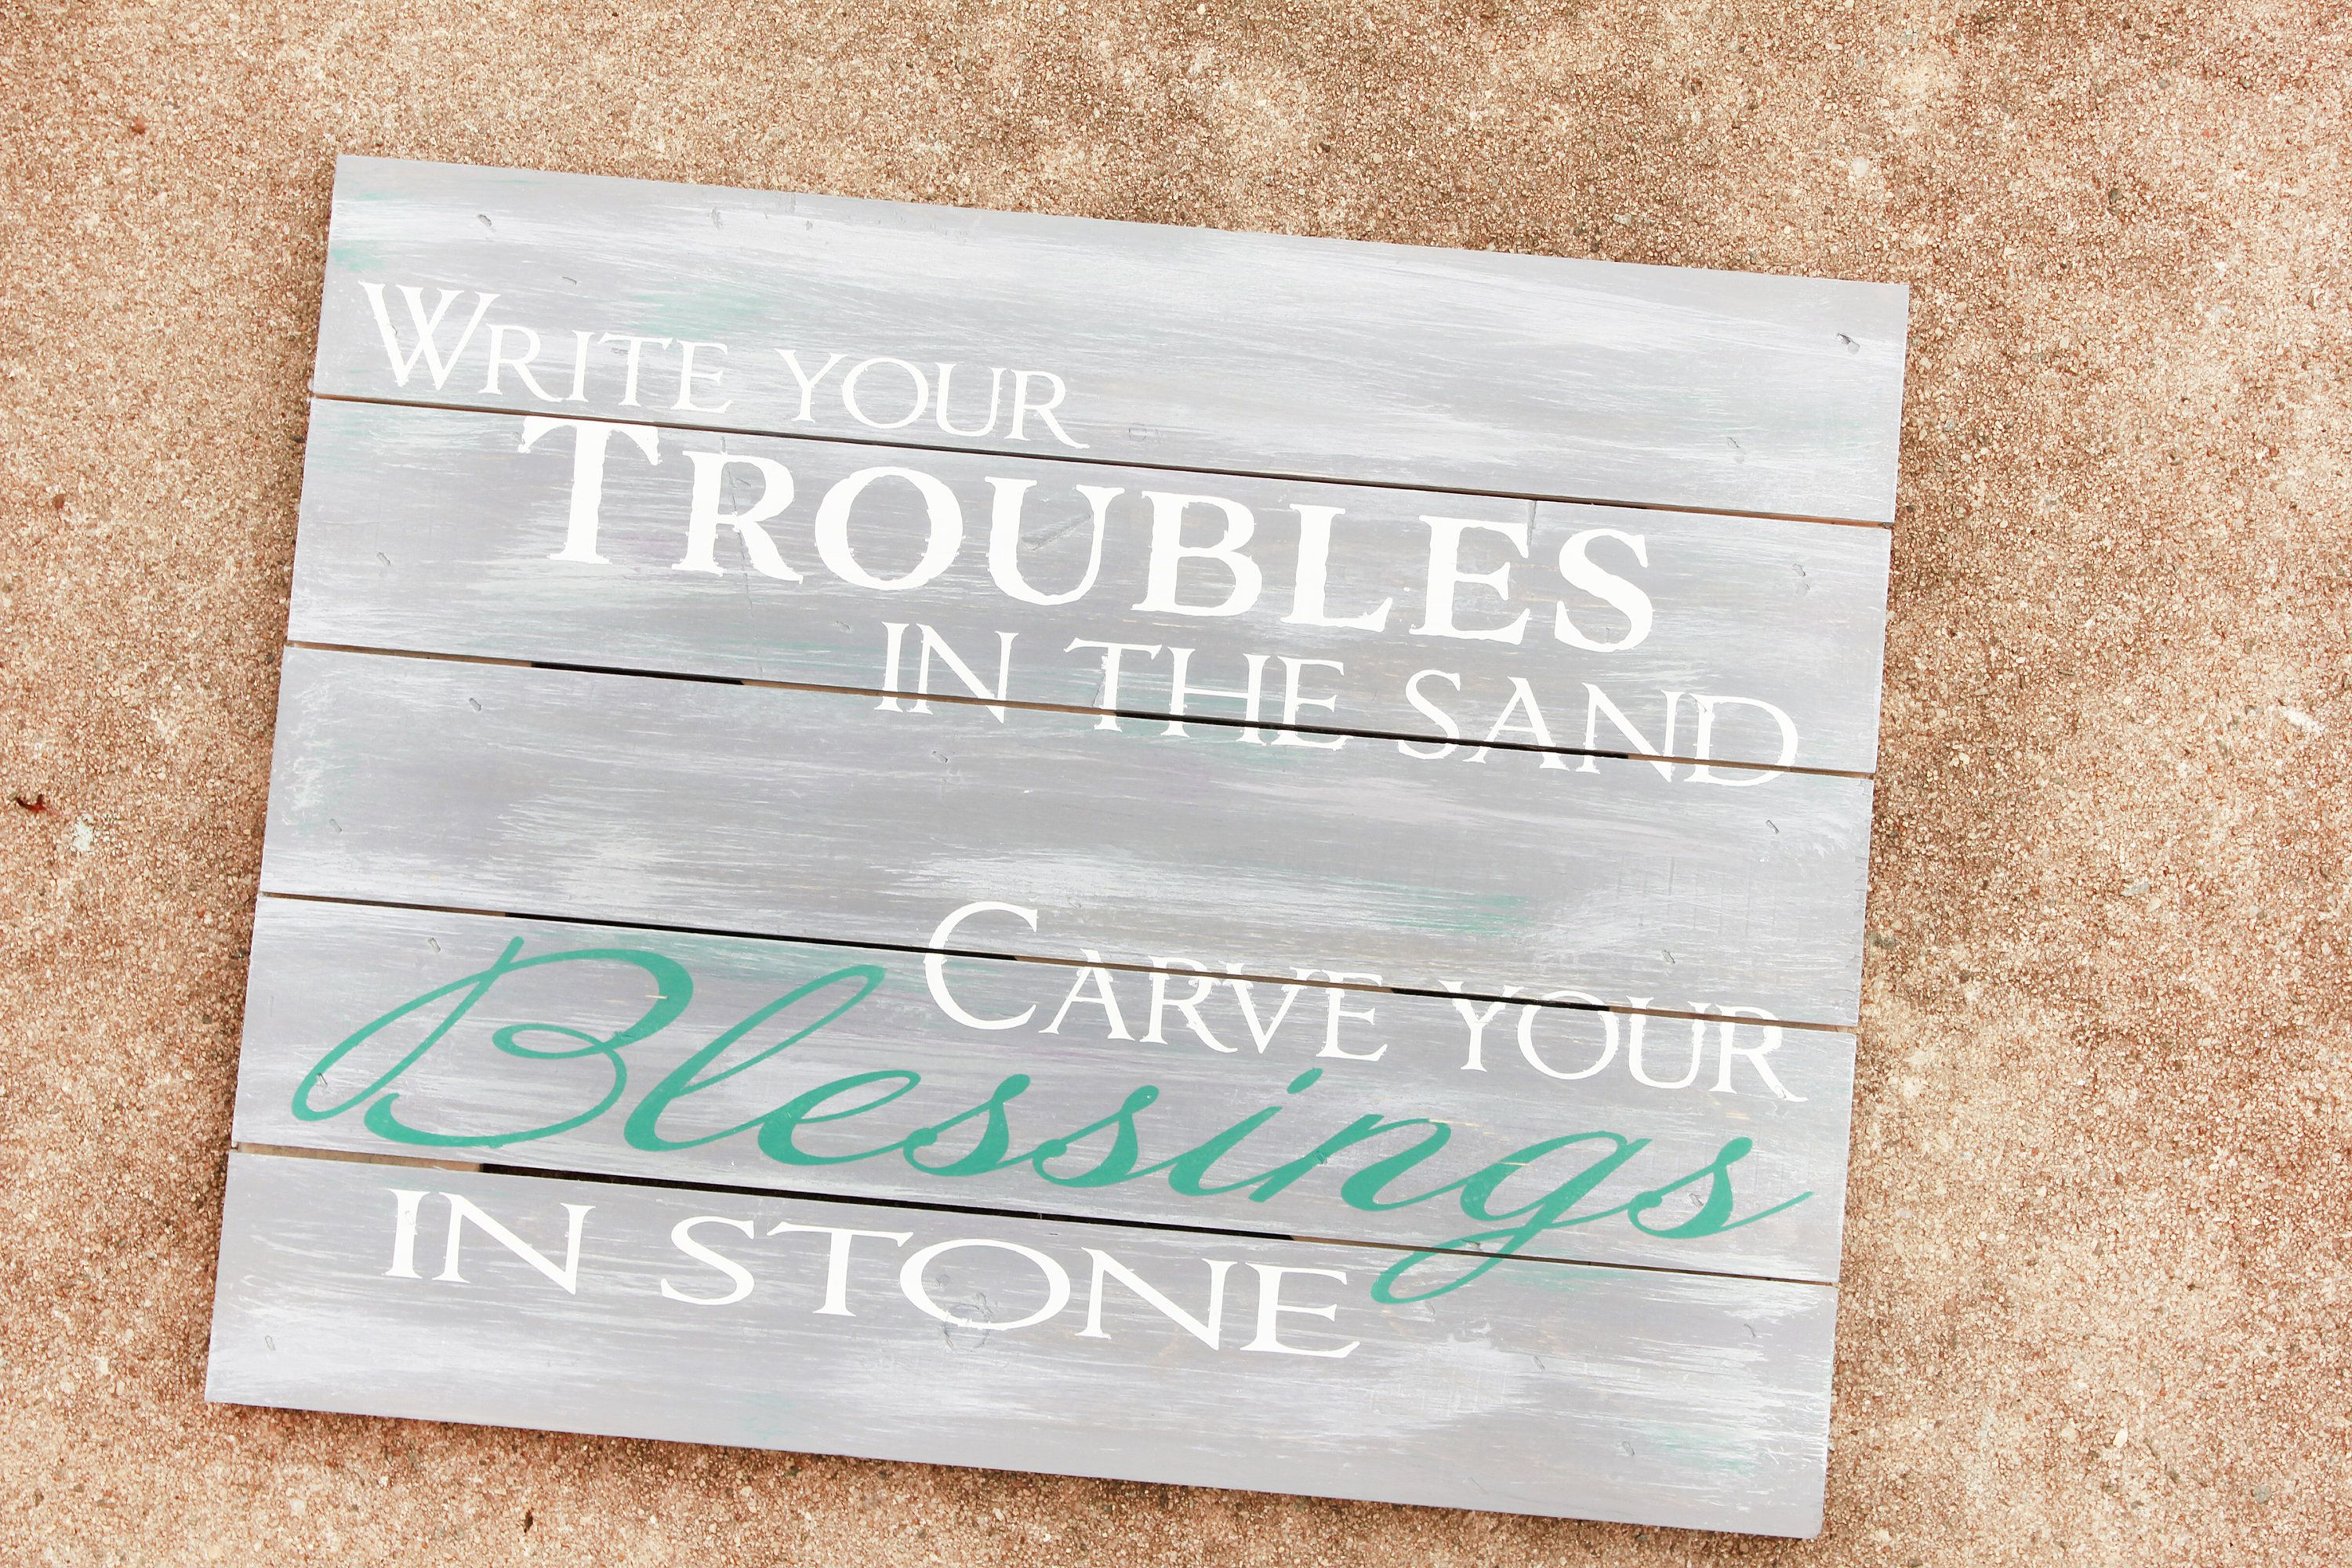 Blessings rustic wood sign painted wood decor farmhouse style wall